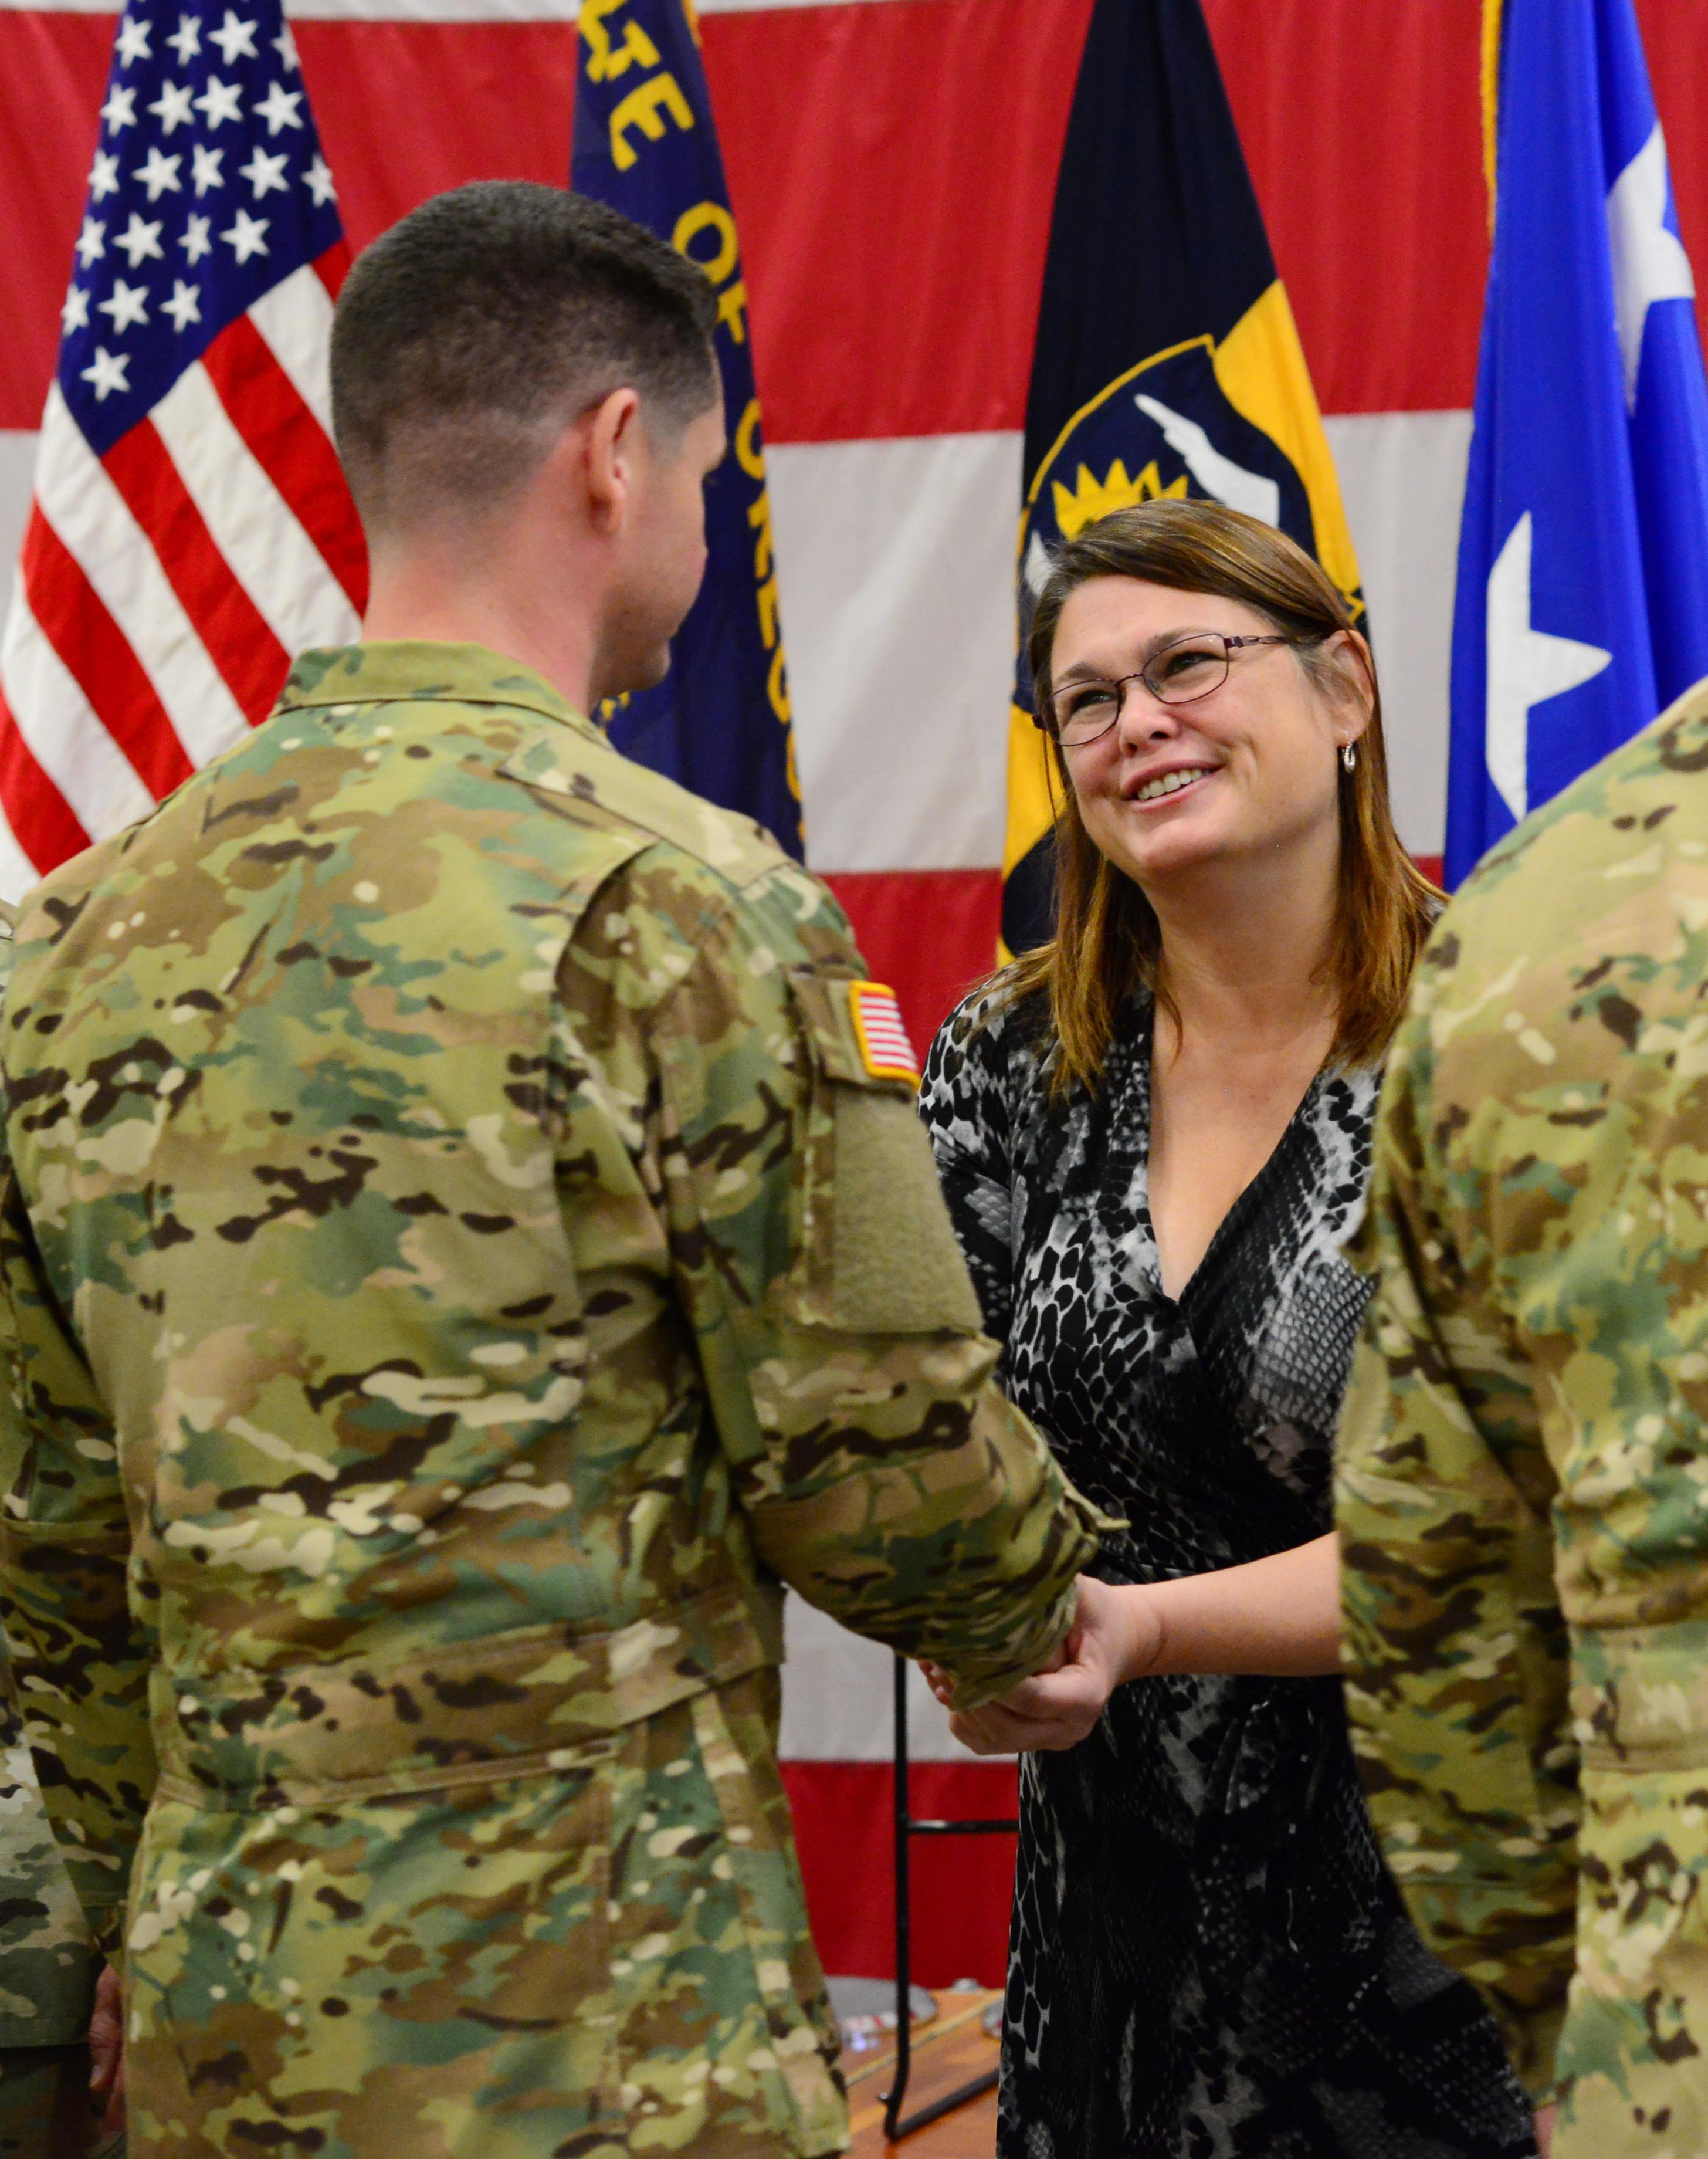 State Senator Sara Gelser greets Oregon Army National Guard Soldiers of Detachment 3, Company G, 1st Battalion, 189th Aviation Regiment, to wish them well on their overseas deployment during a mobilization ceremony, Sept. 29, 2017, in Salem, Oregon. A platoon of more than 20 Soldiers is scheduled to deploy to the Middle East to assist with aerial medical evacuation support using Black Hawk helicopters. They will be joining their parent unit, the South Dakota Army National Guard's Company C, 1-189th Aviation Battalion, in the Middle East and will be deployed for approximately one year. (Photo by Sgt. 1st Class April Davis, Oregon Military Department Public Affairs)